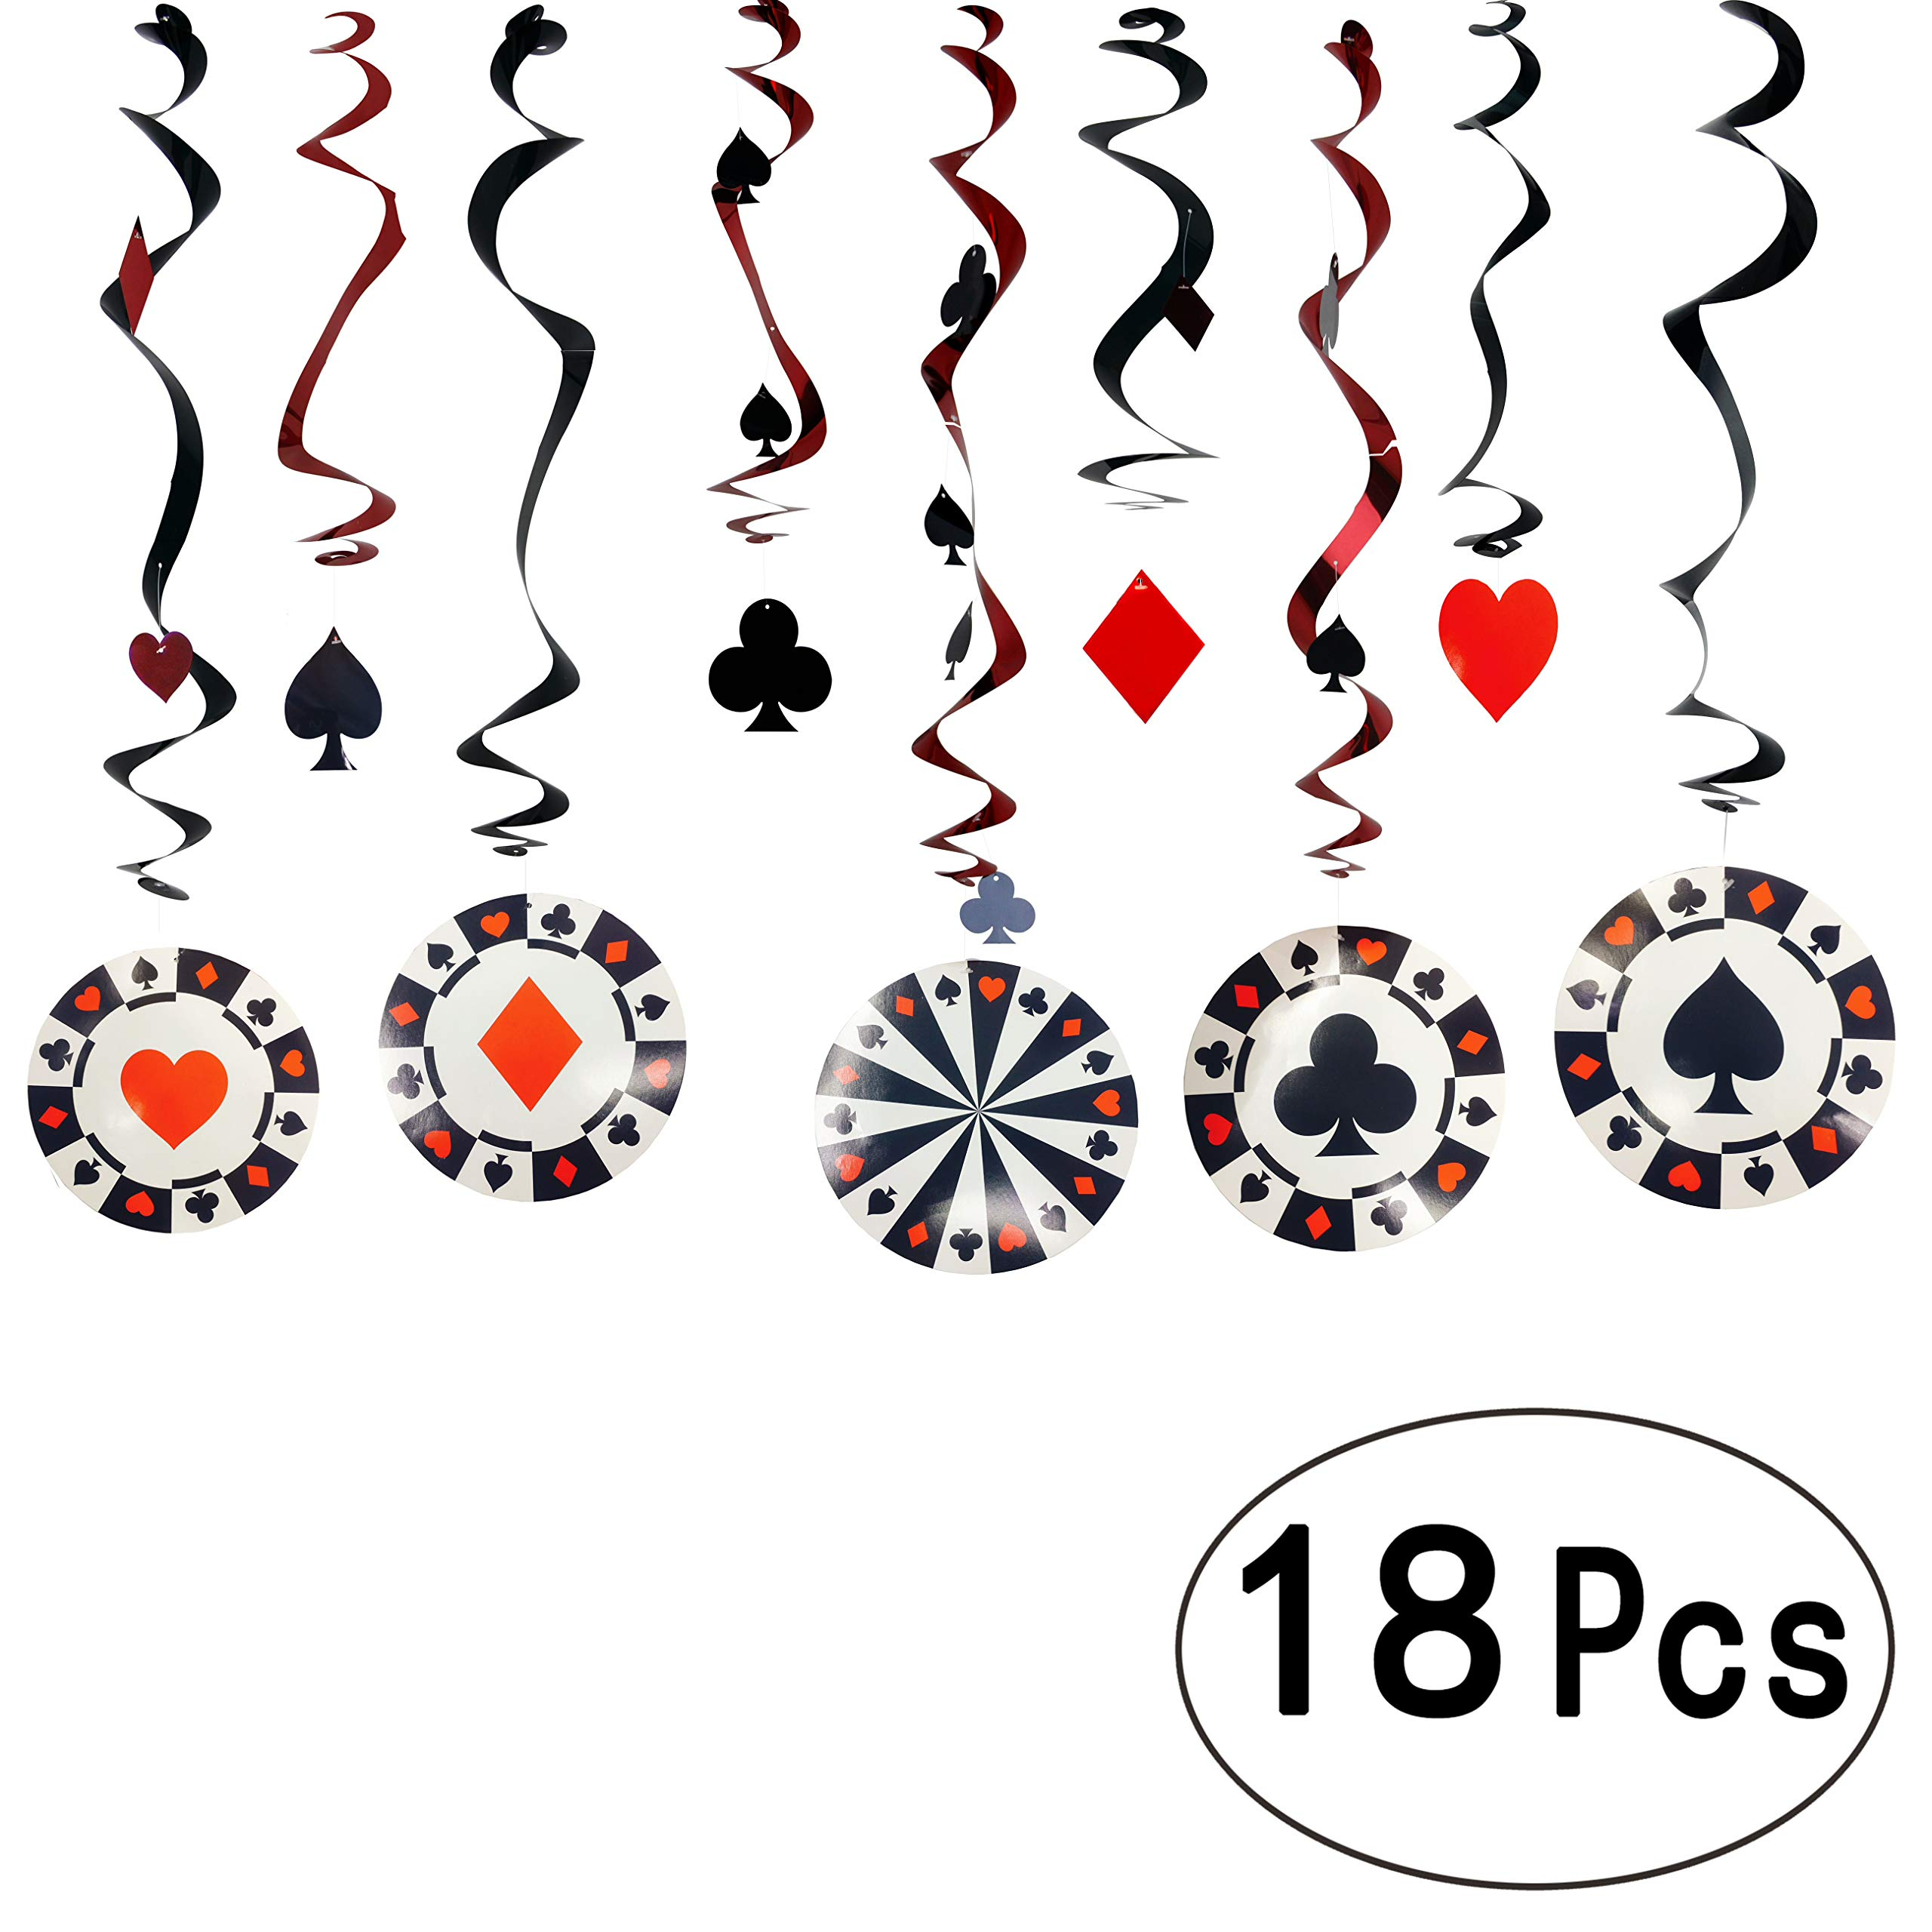 Game Night Casino Party Foil Hanging Swirls Decorations Viva Las Vegas Ceiling Hangings Garlands Cards Bingo Poker Card Casino Night Party Whirls Hanging Decorations, 18Ct